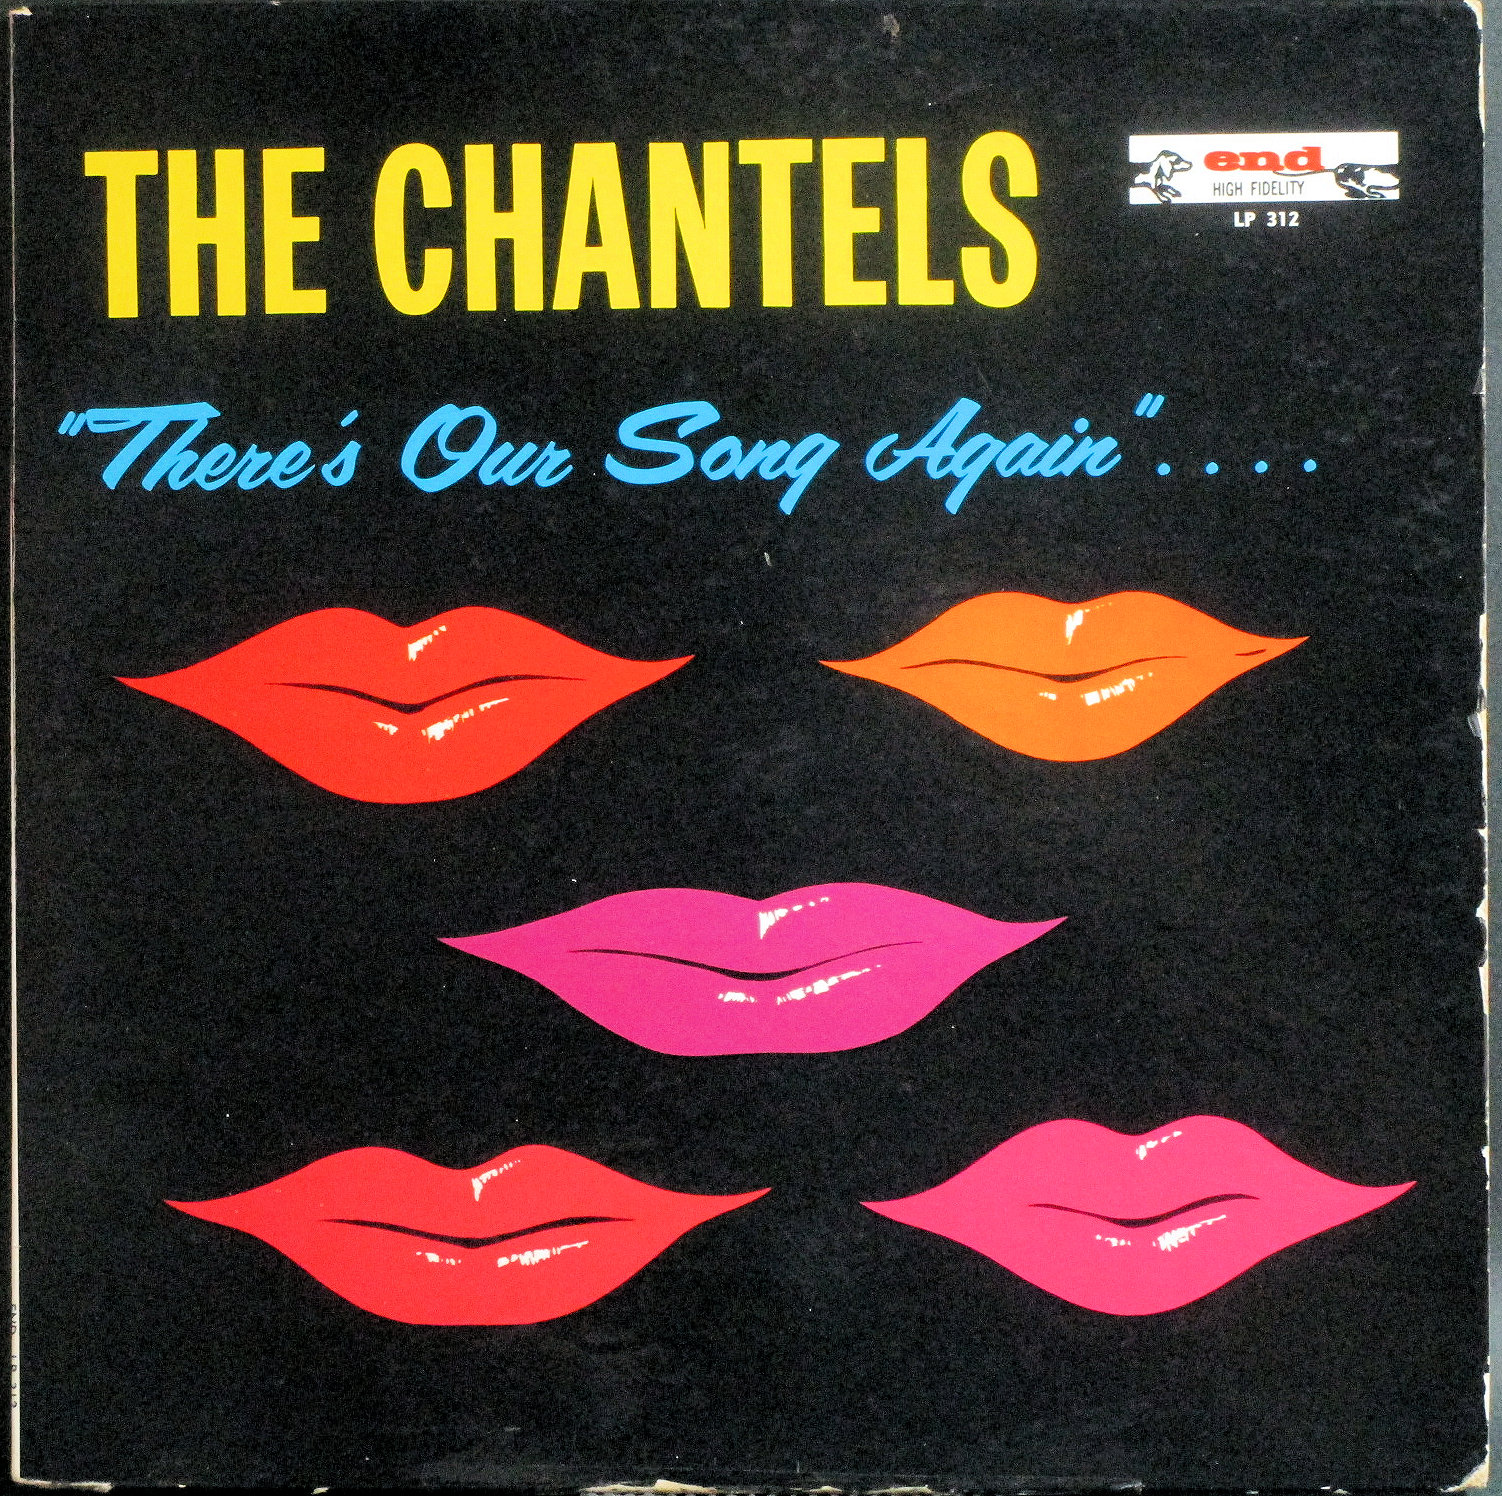 Chantels シャンテルズ / There's Our Song Again ゼアズ・アワ・ソング・アゲイン